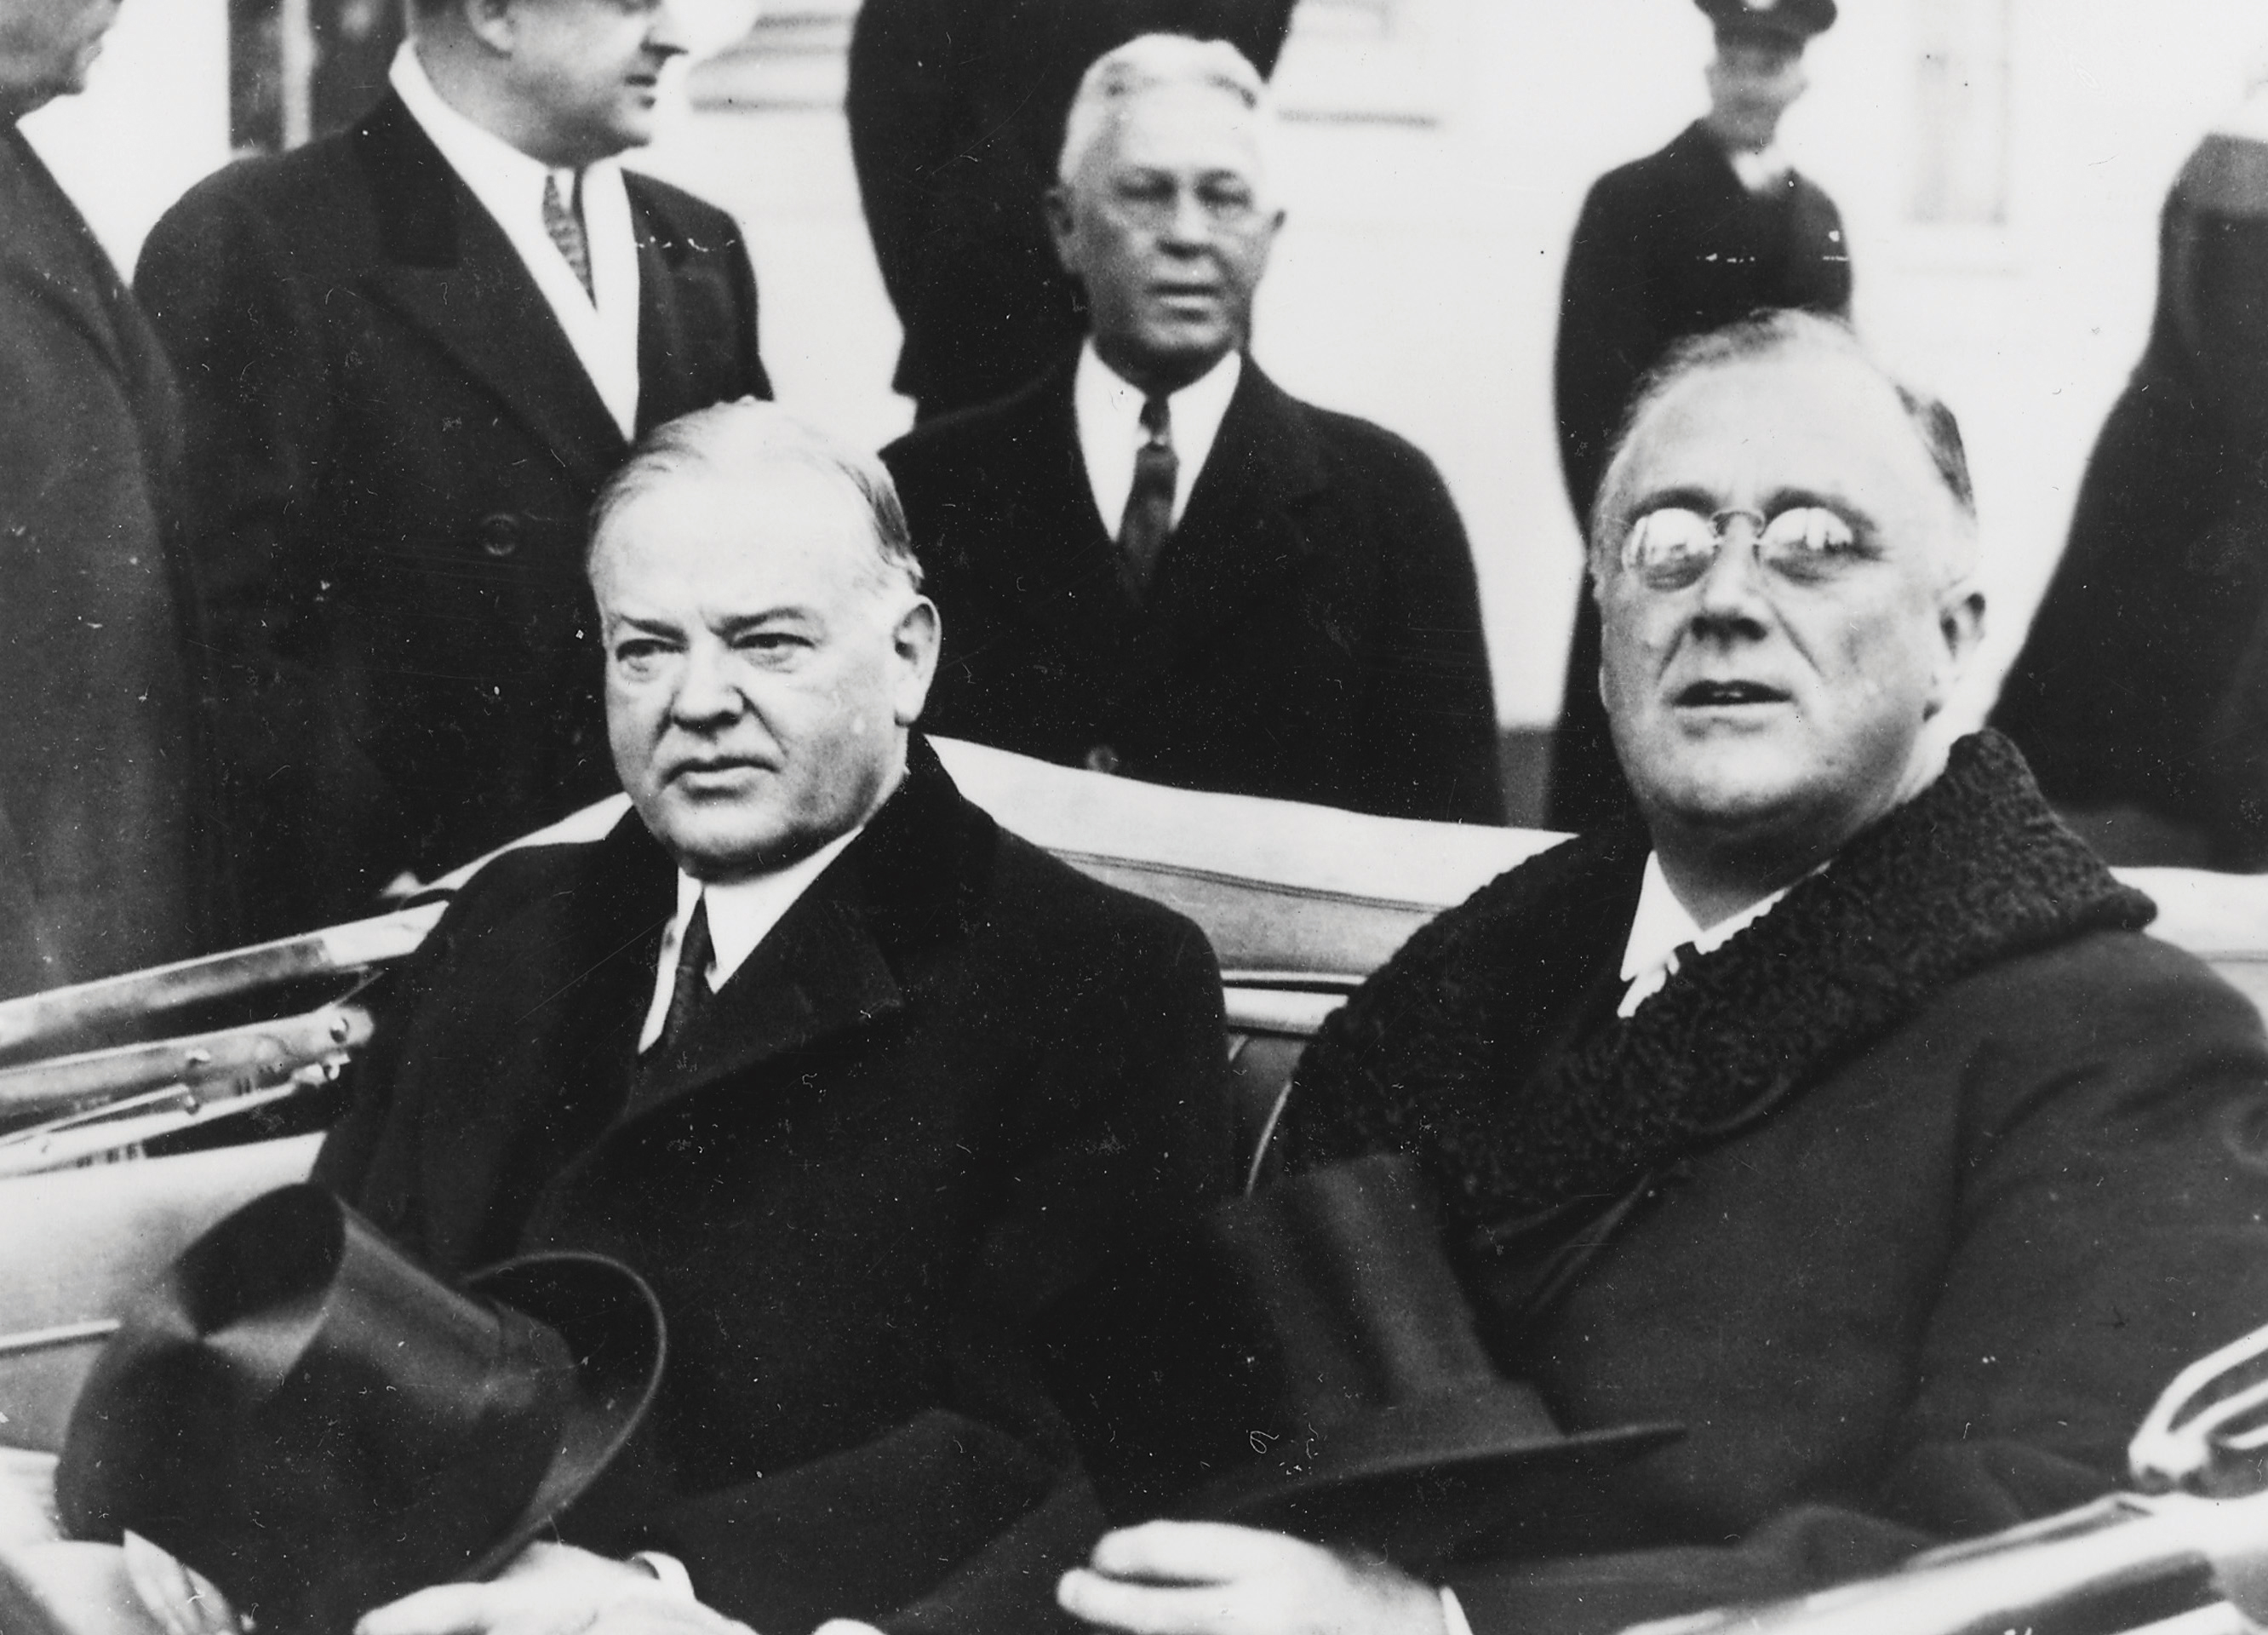 a comparison of franklin d roosevelt and herbert c hoover as presidents of the united states Who was president when the united states entered world war ii a dwight eisenhower b herbert hoover c harry truman d franklin roosevelt - 379264.